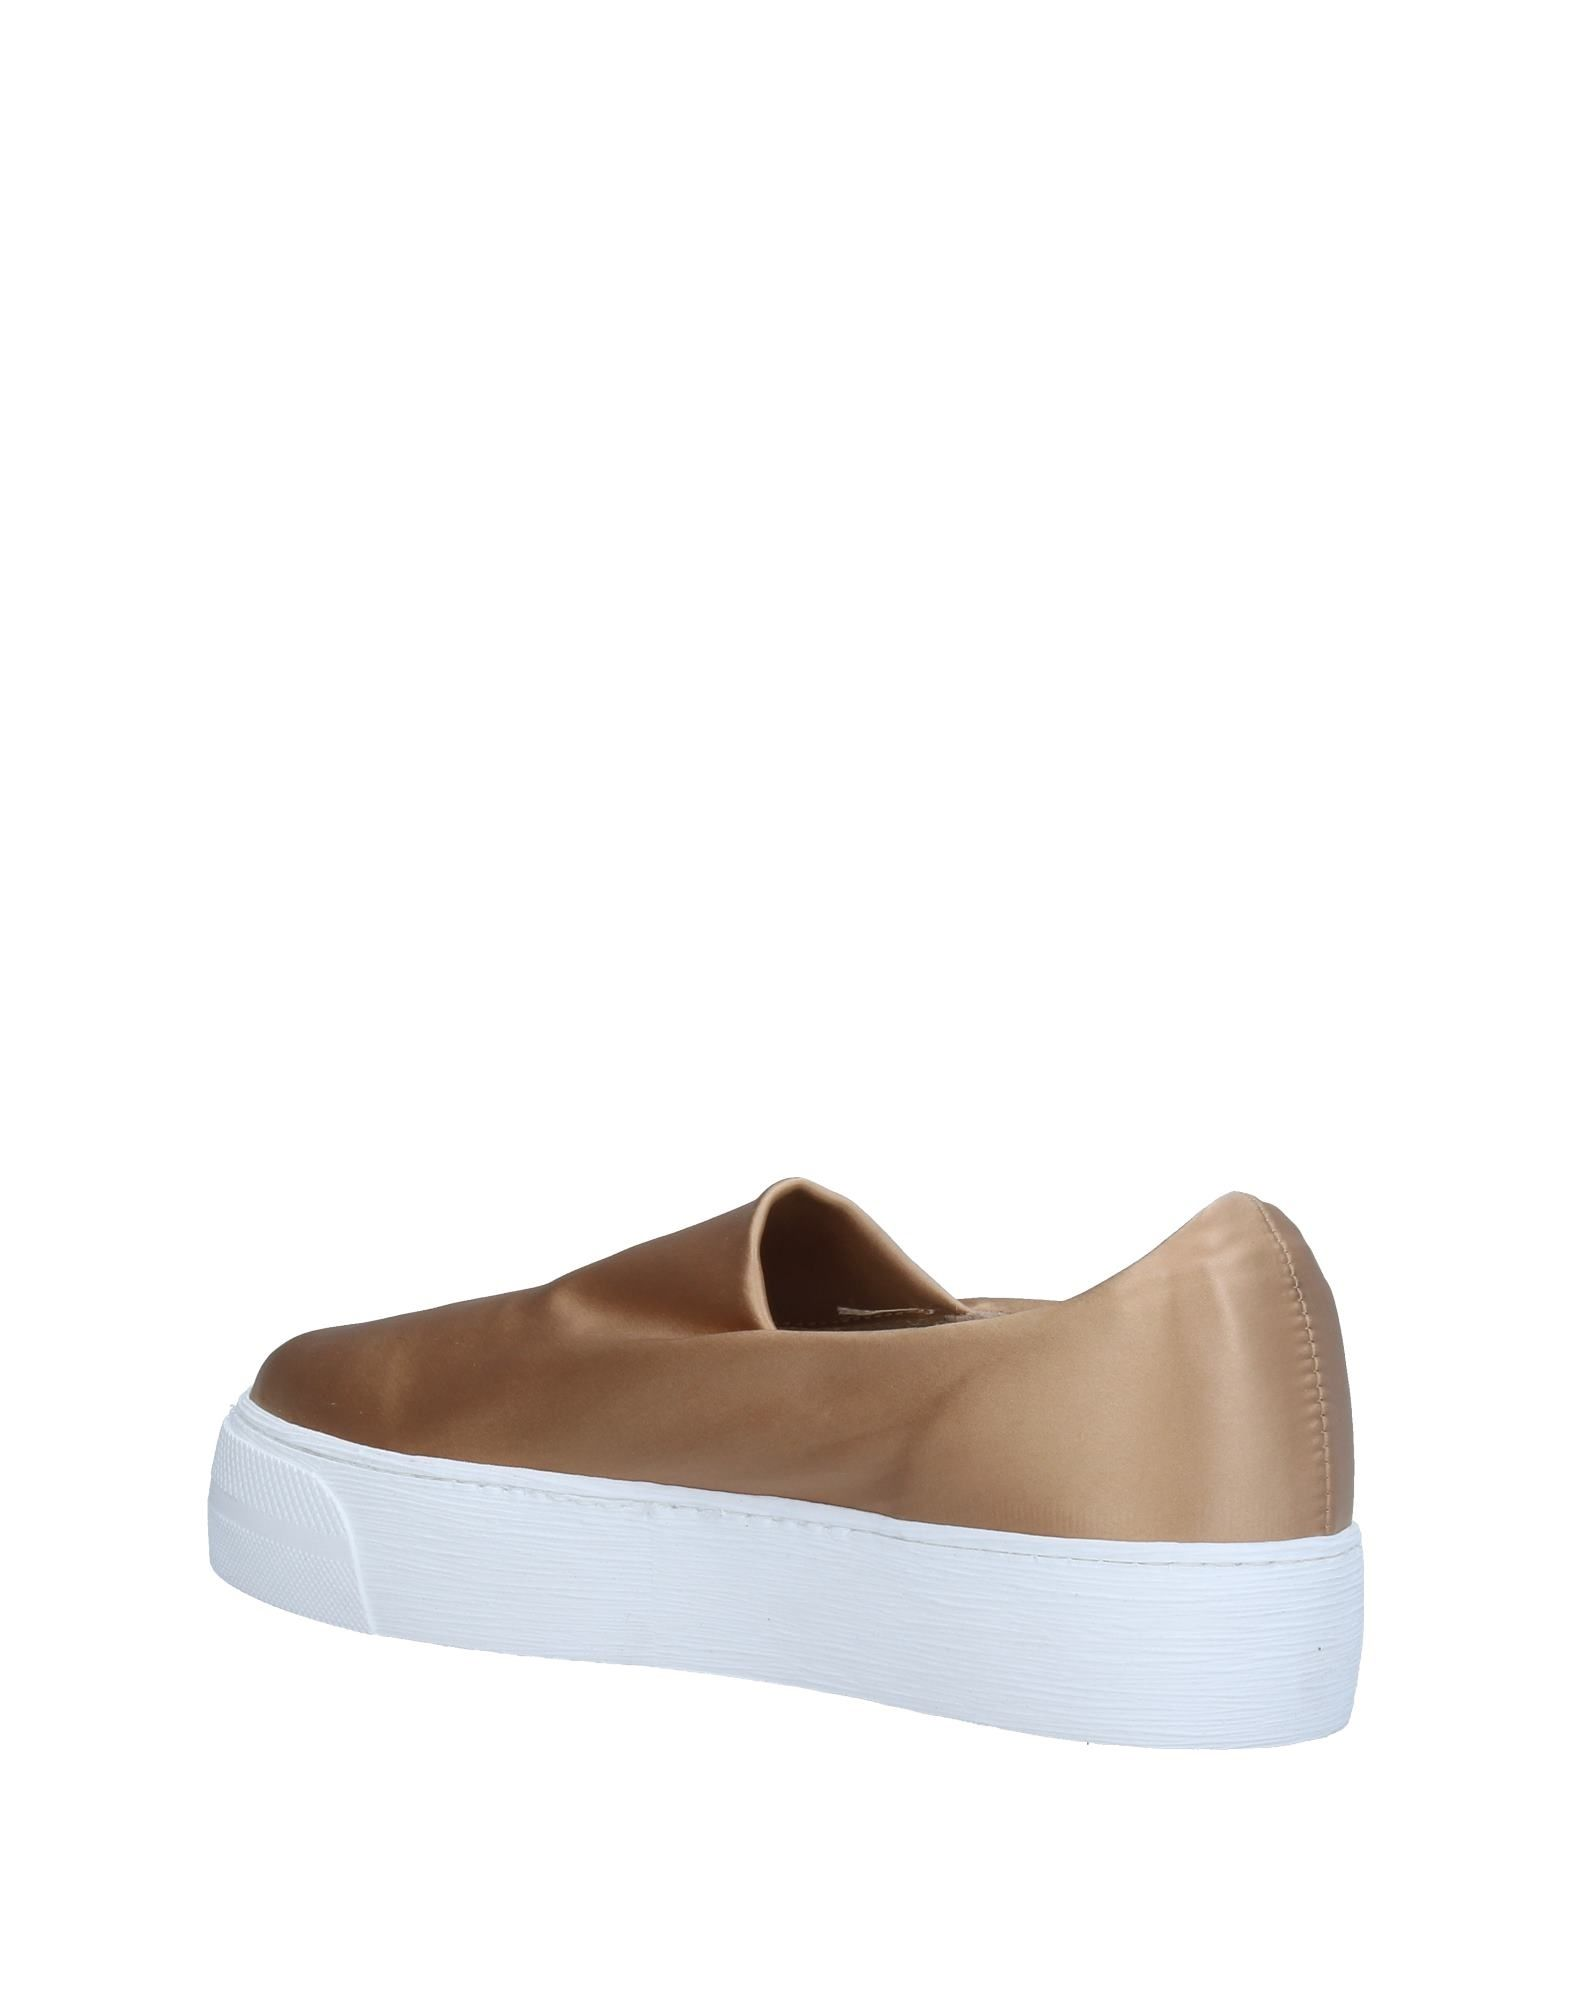 Sneakers 1725.A Femme - Sneakers 1725.A sur